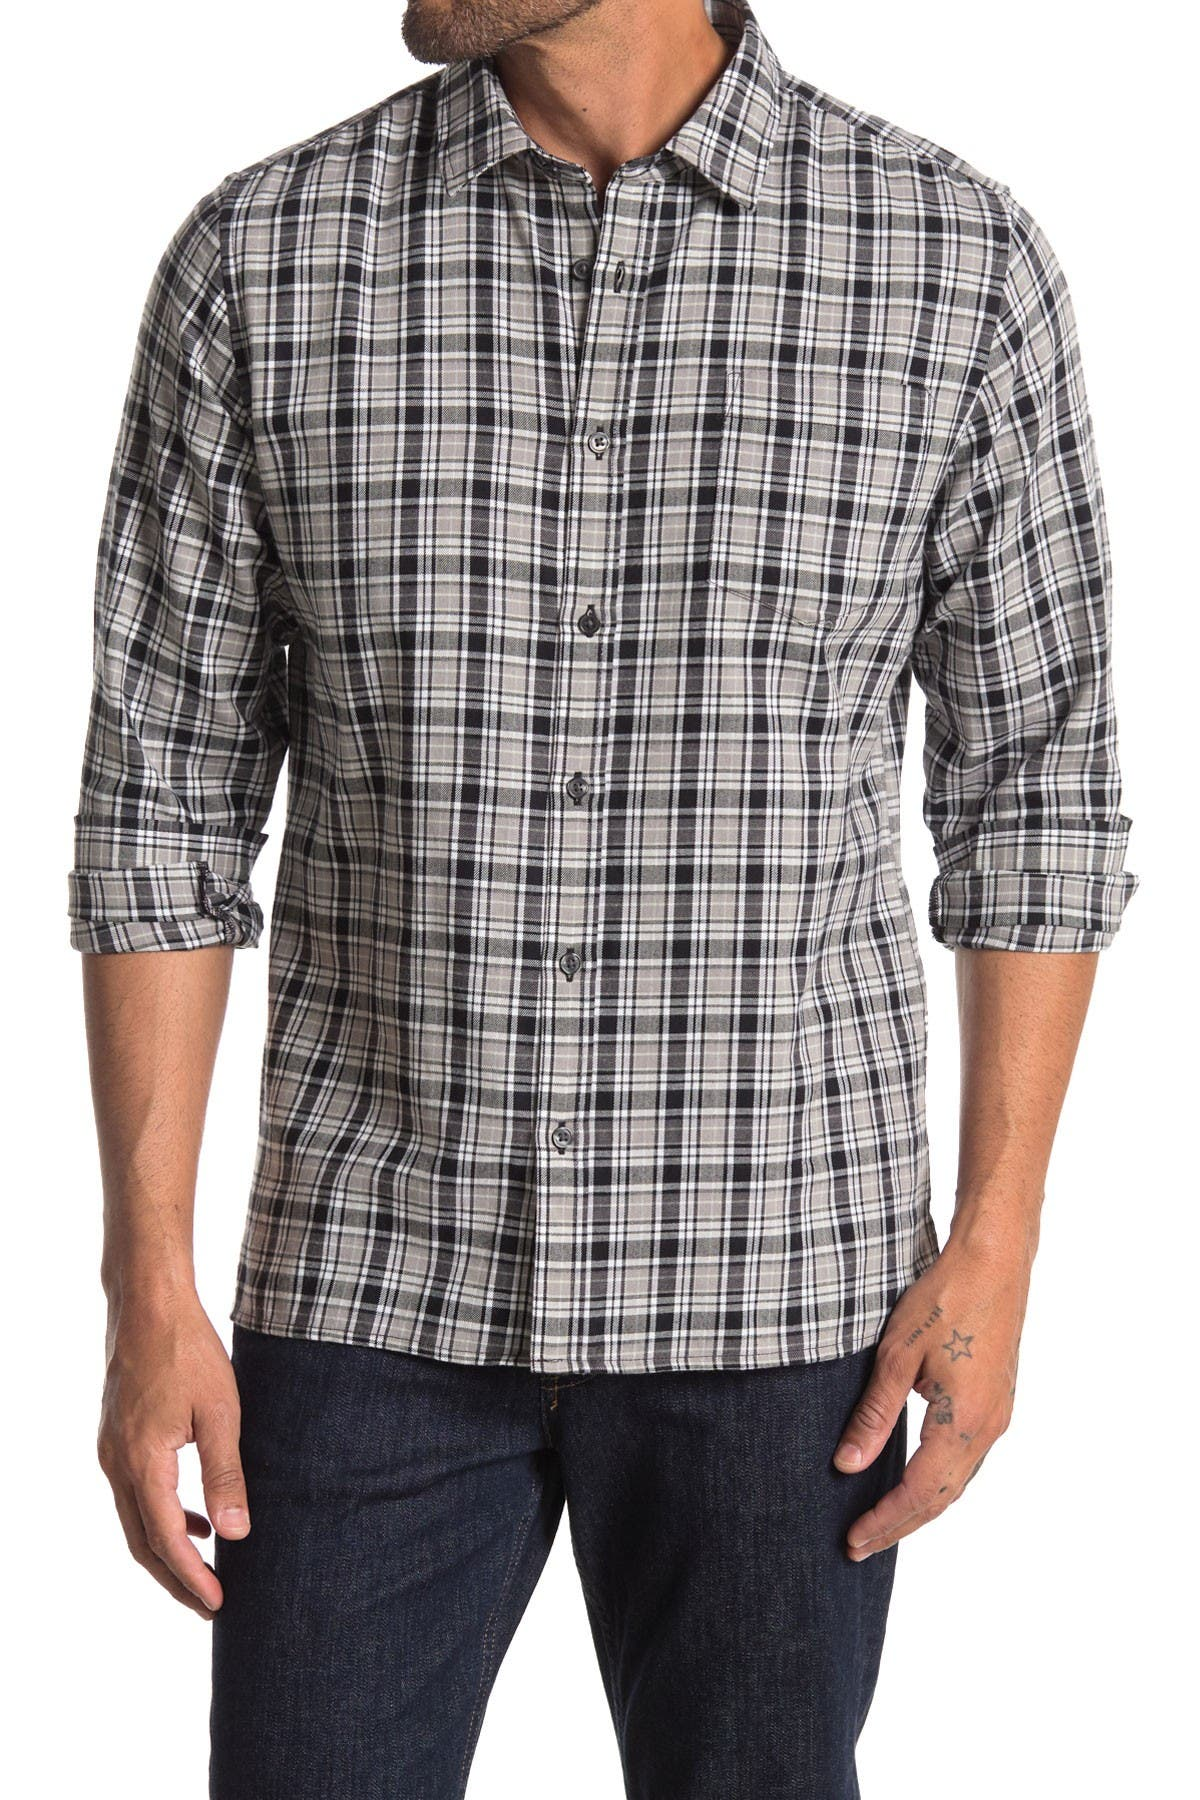 Image of Slate & Stone Plaid Regular Fit Flannel Shirt